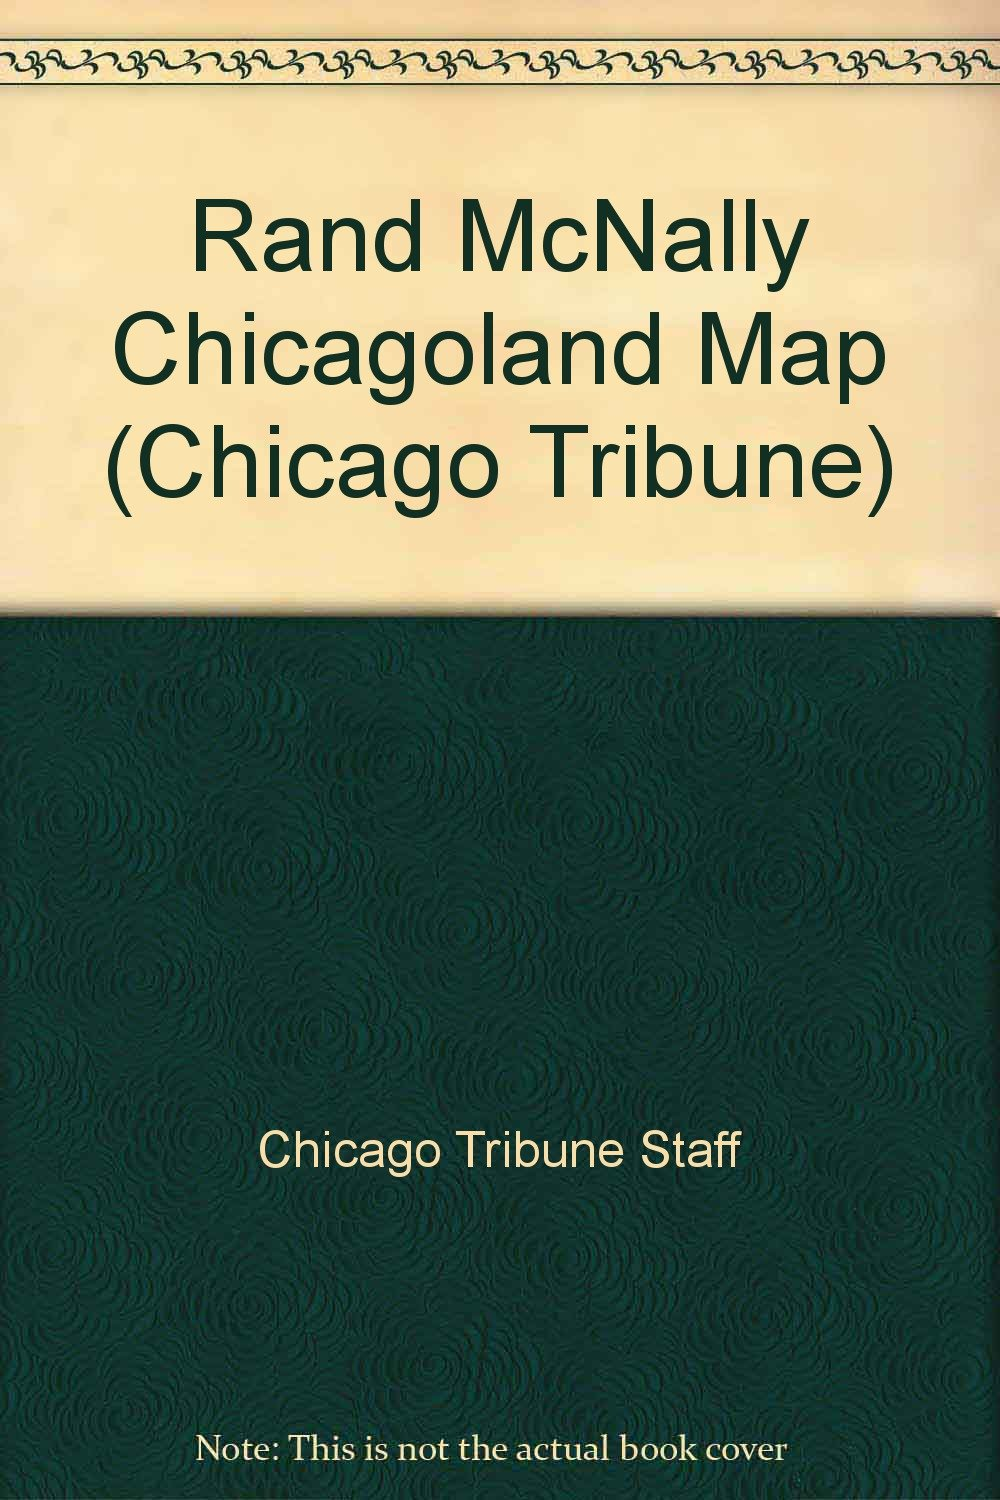 Rand McNally Chicagoland Map (Chicago Tribune): Chicago ... on people map, chicago murder map, chicago area map, chicago street map with numbers, chicago highway map with names, english map, goose island chicago map, chicago ward map, chicago indianapolis map, google map, chicago cubs map, the state map, chicago crime map, chicago suburban map, chicago united states map, chicago road map, chicago aurora map, chicago texas map, ap map, chicago bay map,